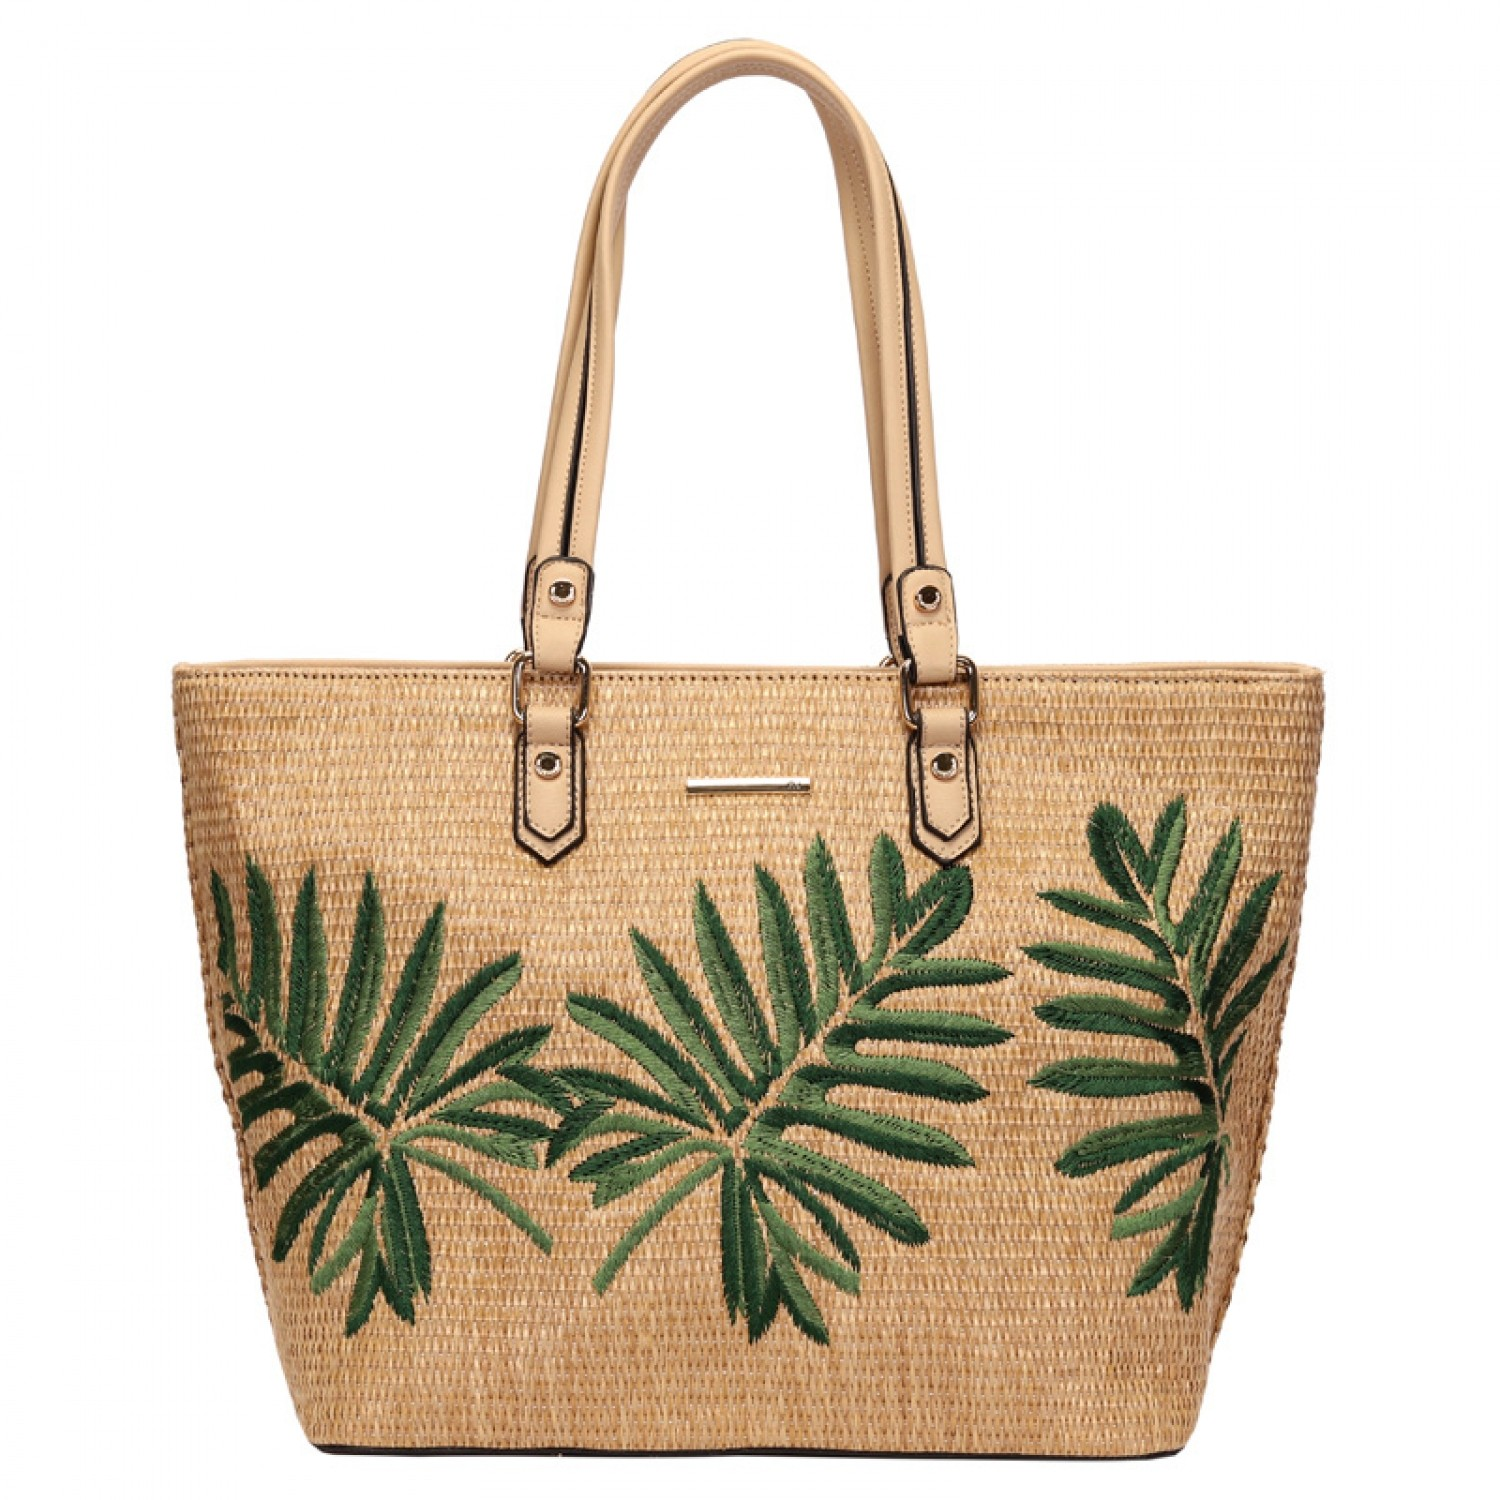 BOLSA SHOPPING BAG BORDADA PALHA